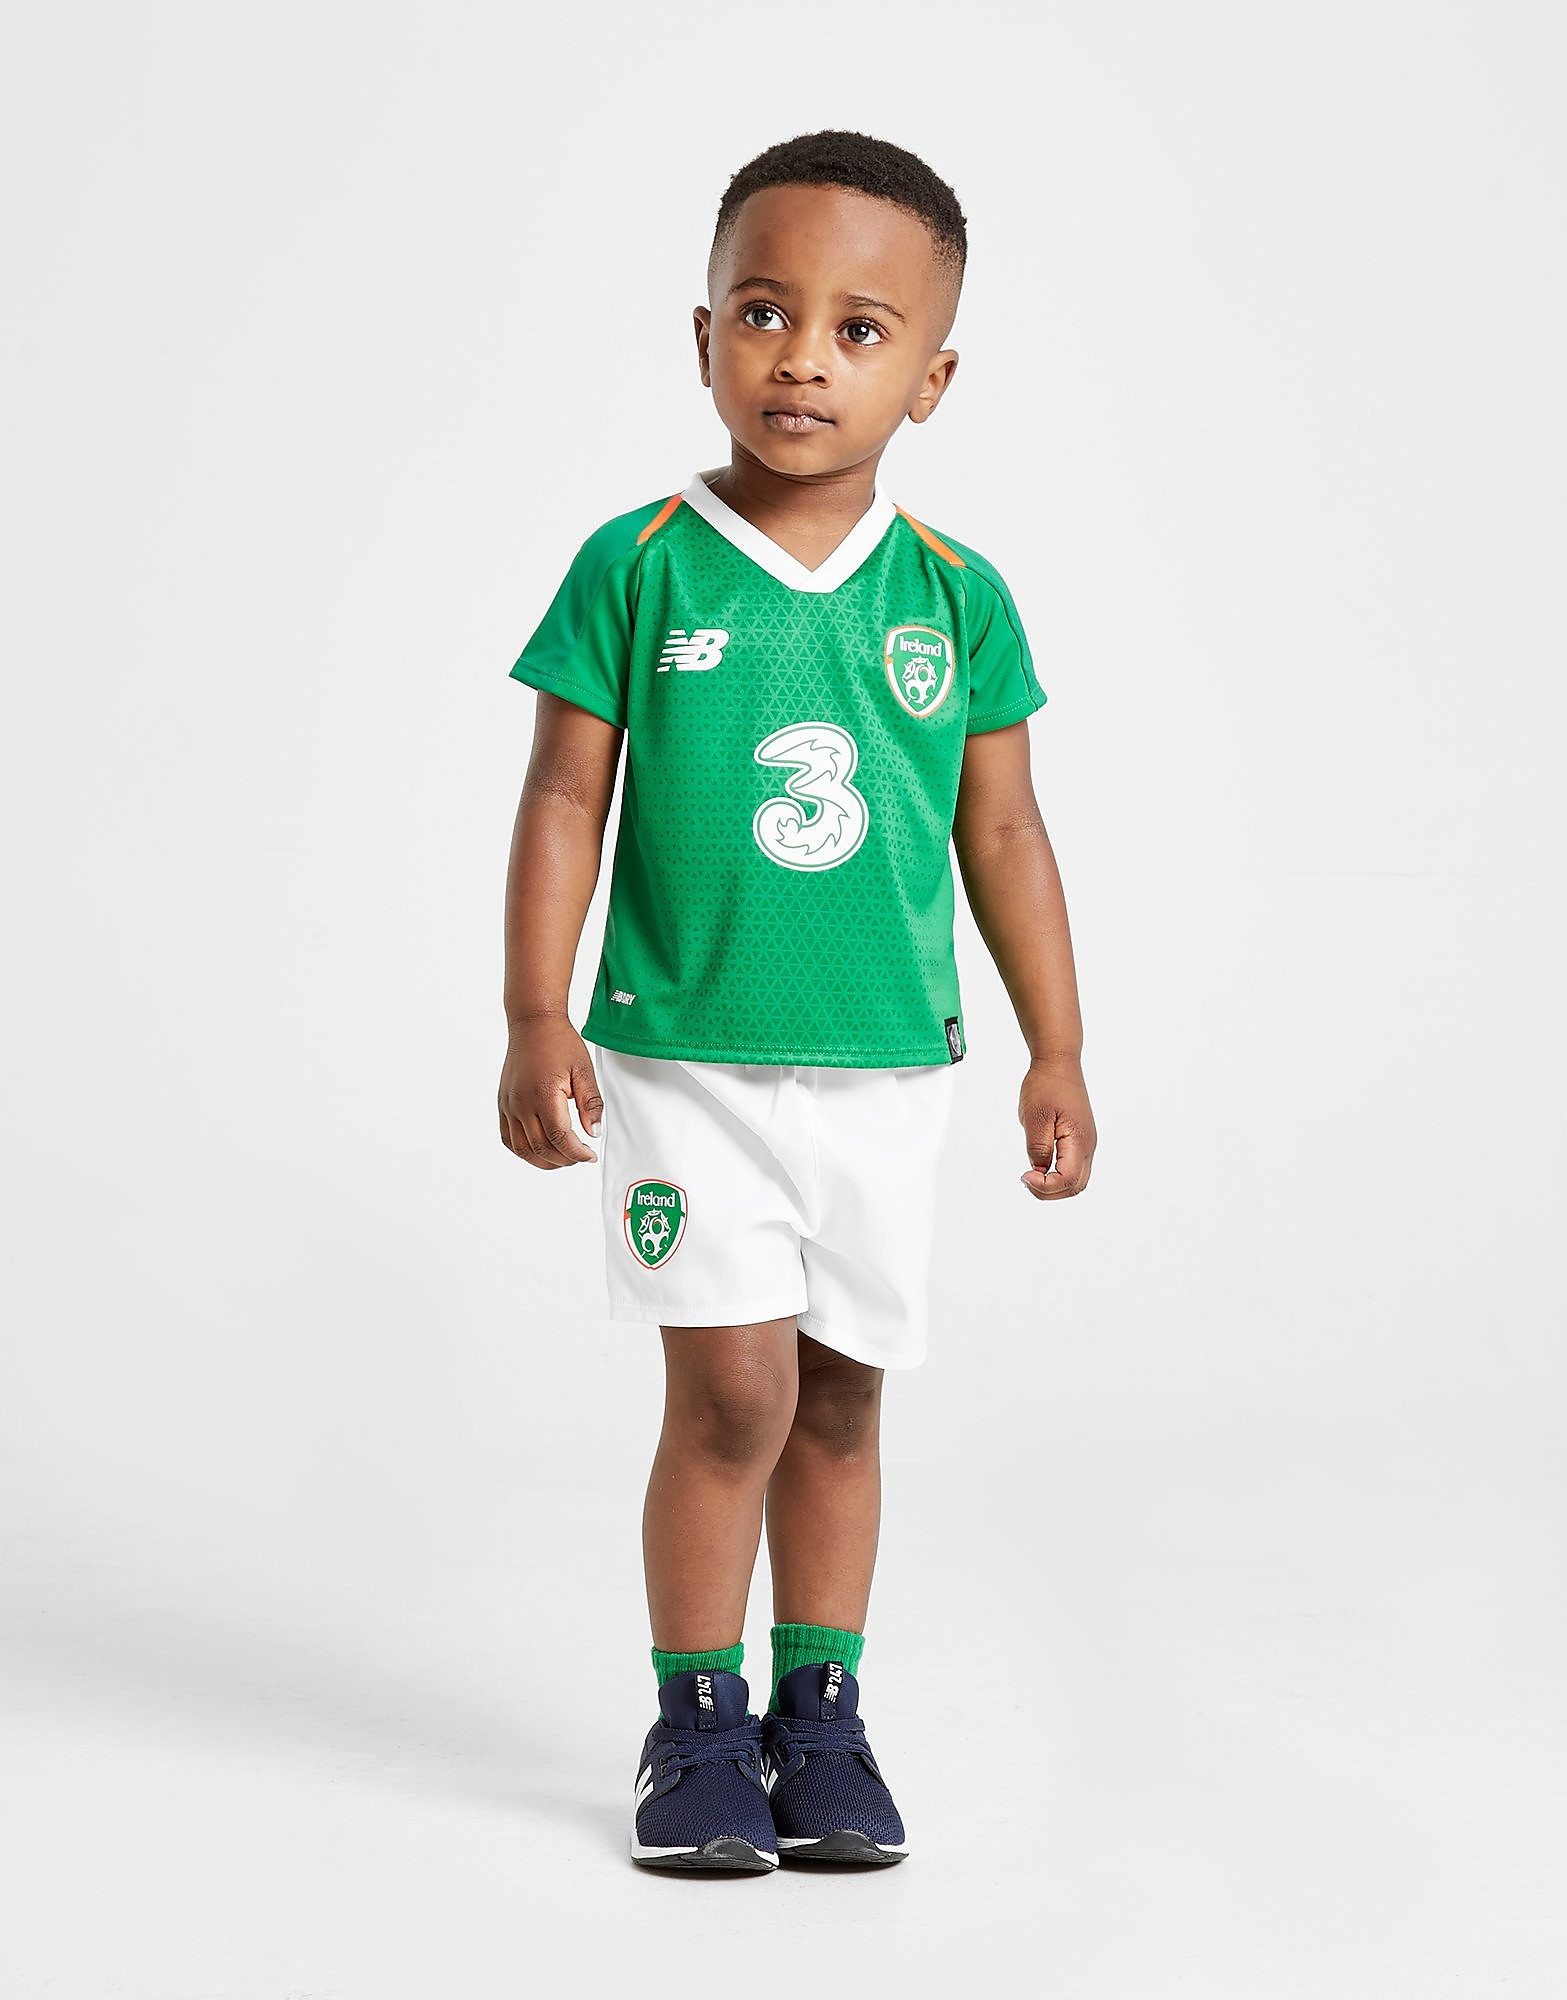 New Balance Republic of Ireland 2018/19 Home Kit Baby's - Groen - Kind